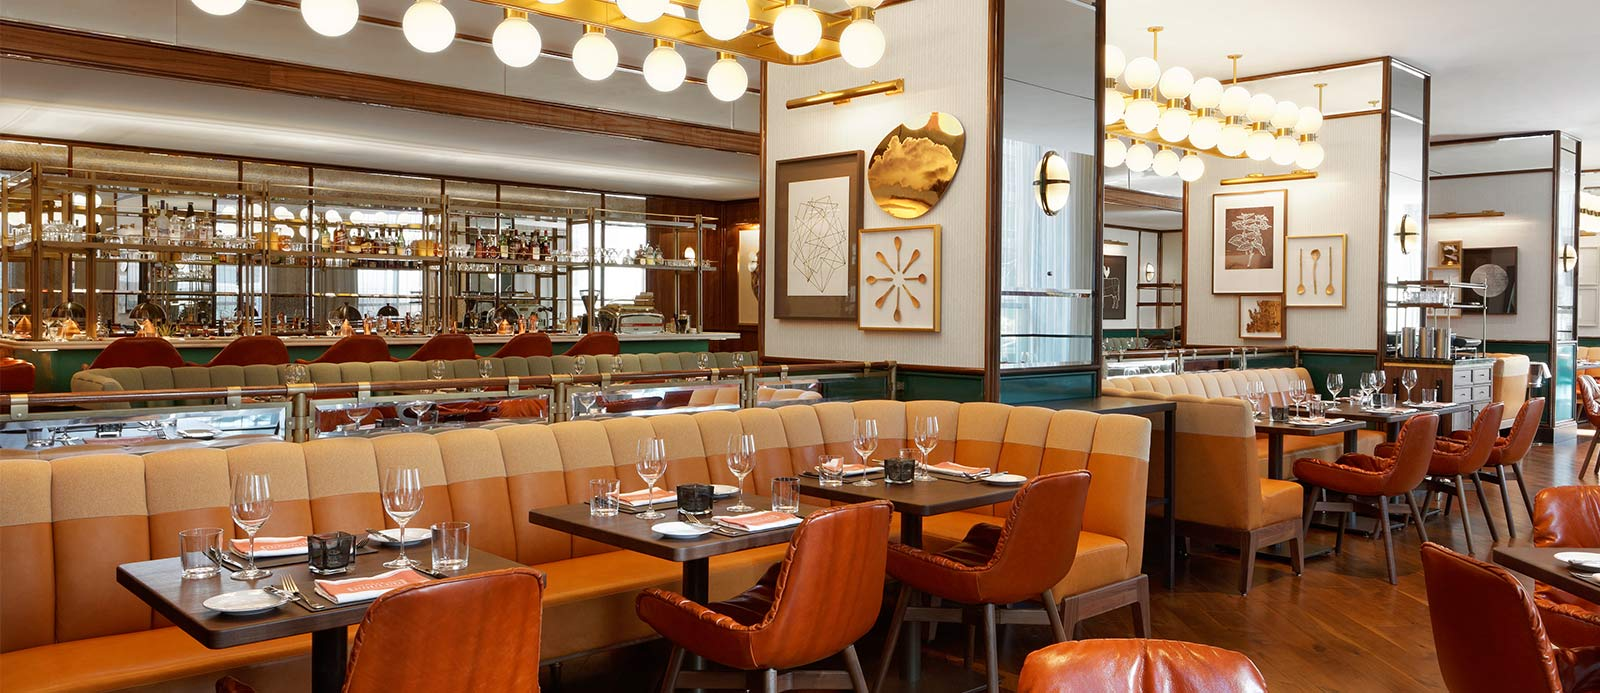 Café Boulud Is Chef Daniel Bouludu0027s Newly Renovated French Brasserie  Located In The Four Seasons Hotel In Yorkville, Toronto.